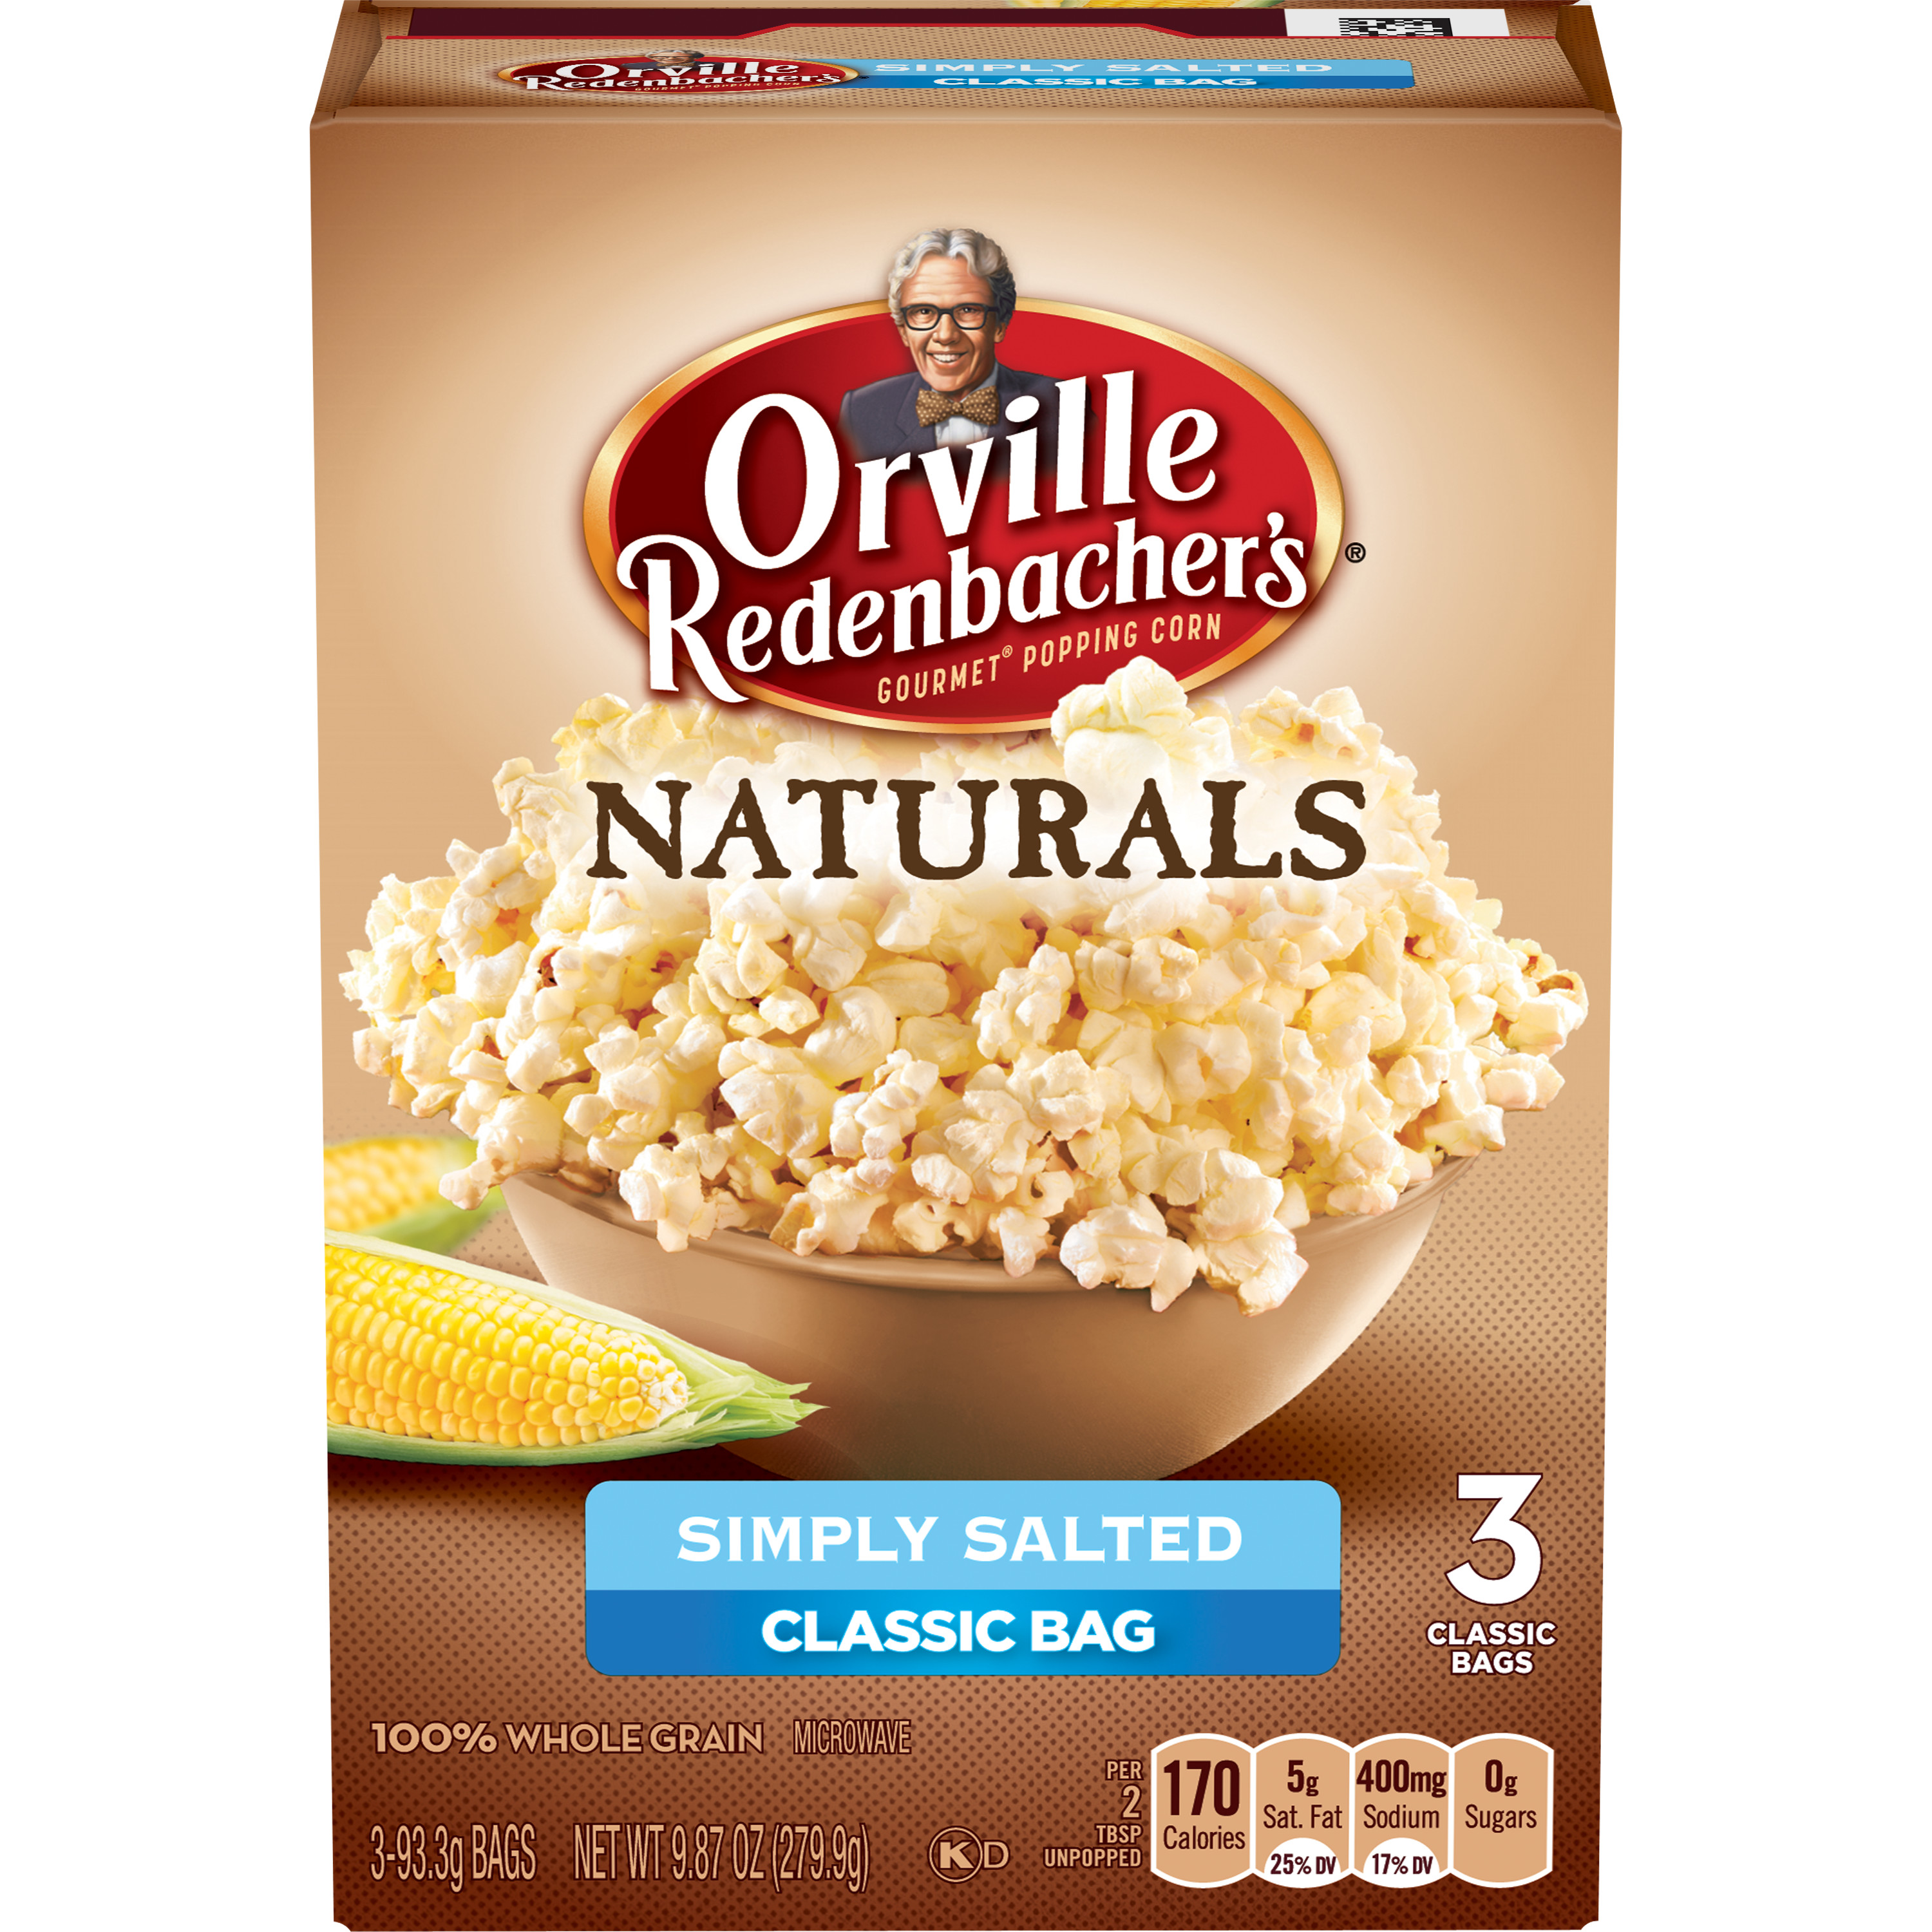 Orville Redenbacher's Natural Simply Salted 3.3 Oz Microwave Popcorn, 3 Pk